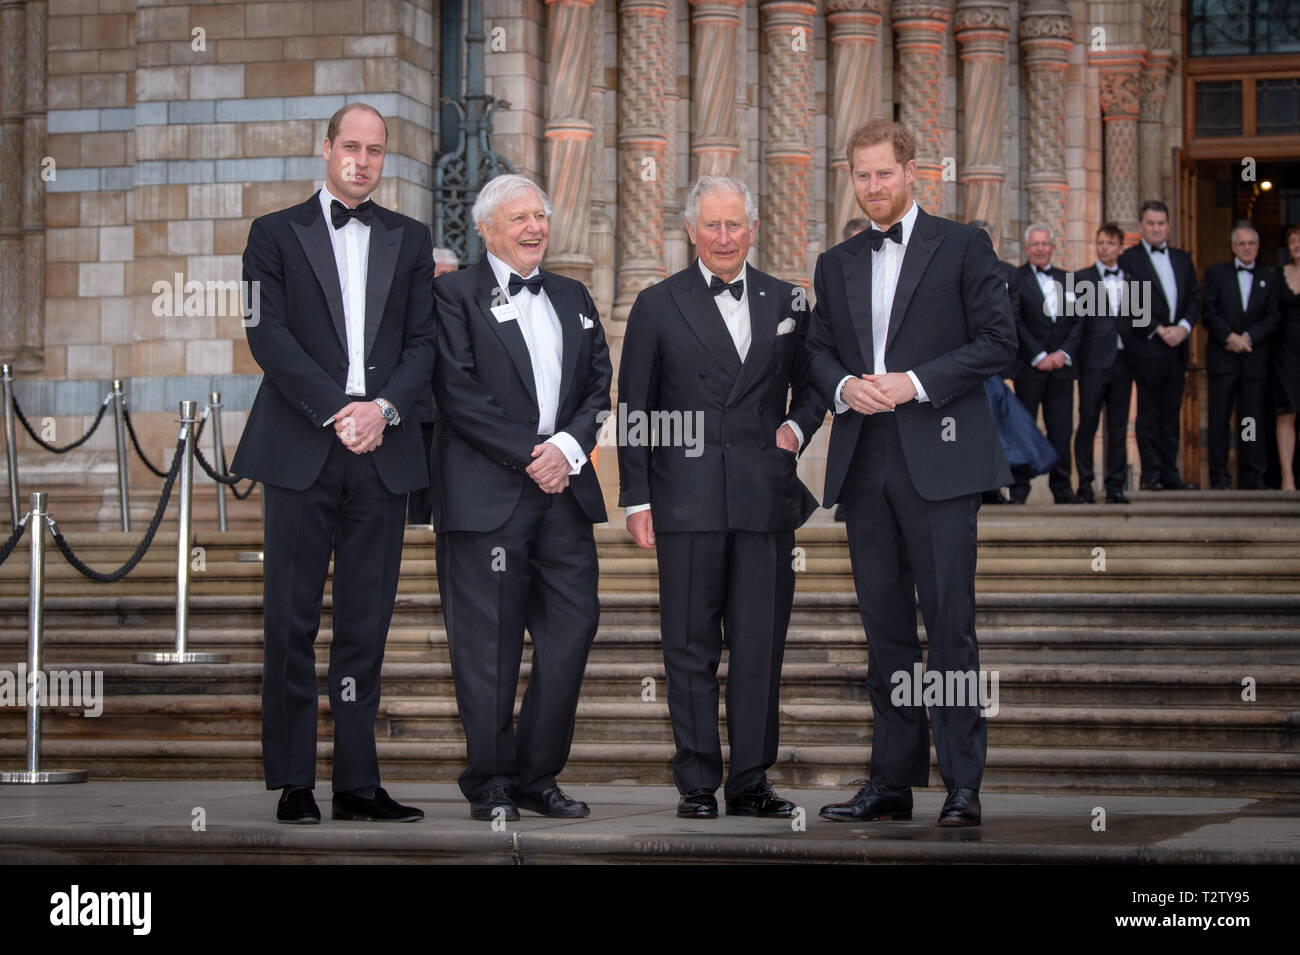 London, United Kingdom. 4 April 2019. Prince William, Sir David Attenborough, Prince Charles & Prince Harry pose for photographs at the global premiere of 'Our Planet' presented by Netflix. Credit: Peter Manning/Alamy Live News Stock Photo